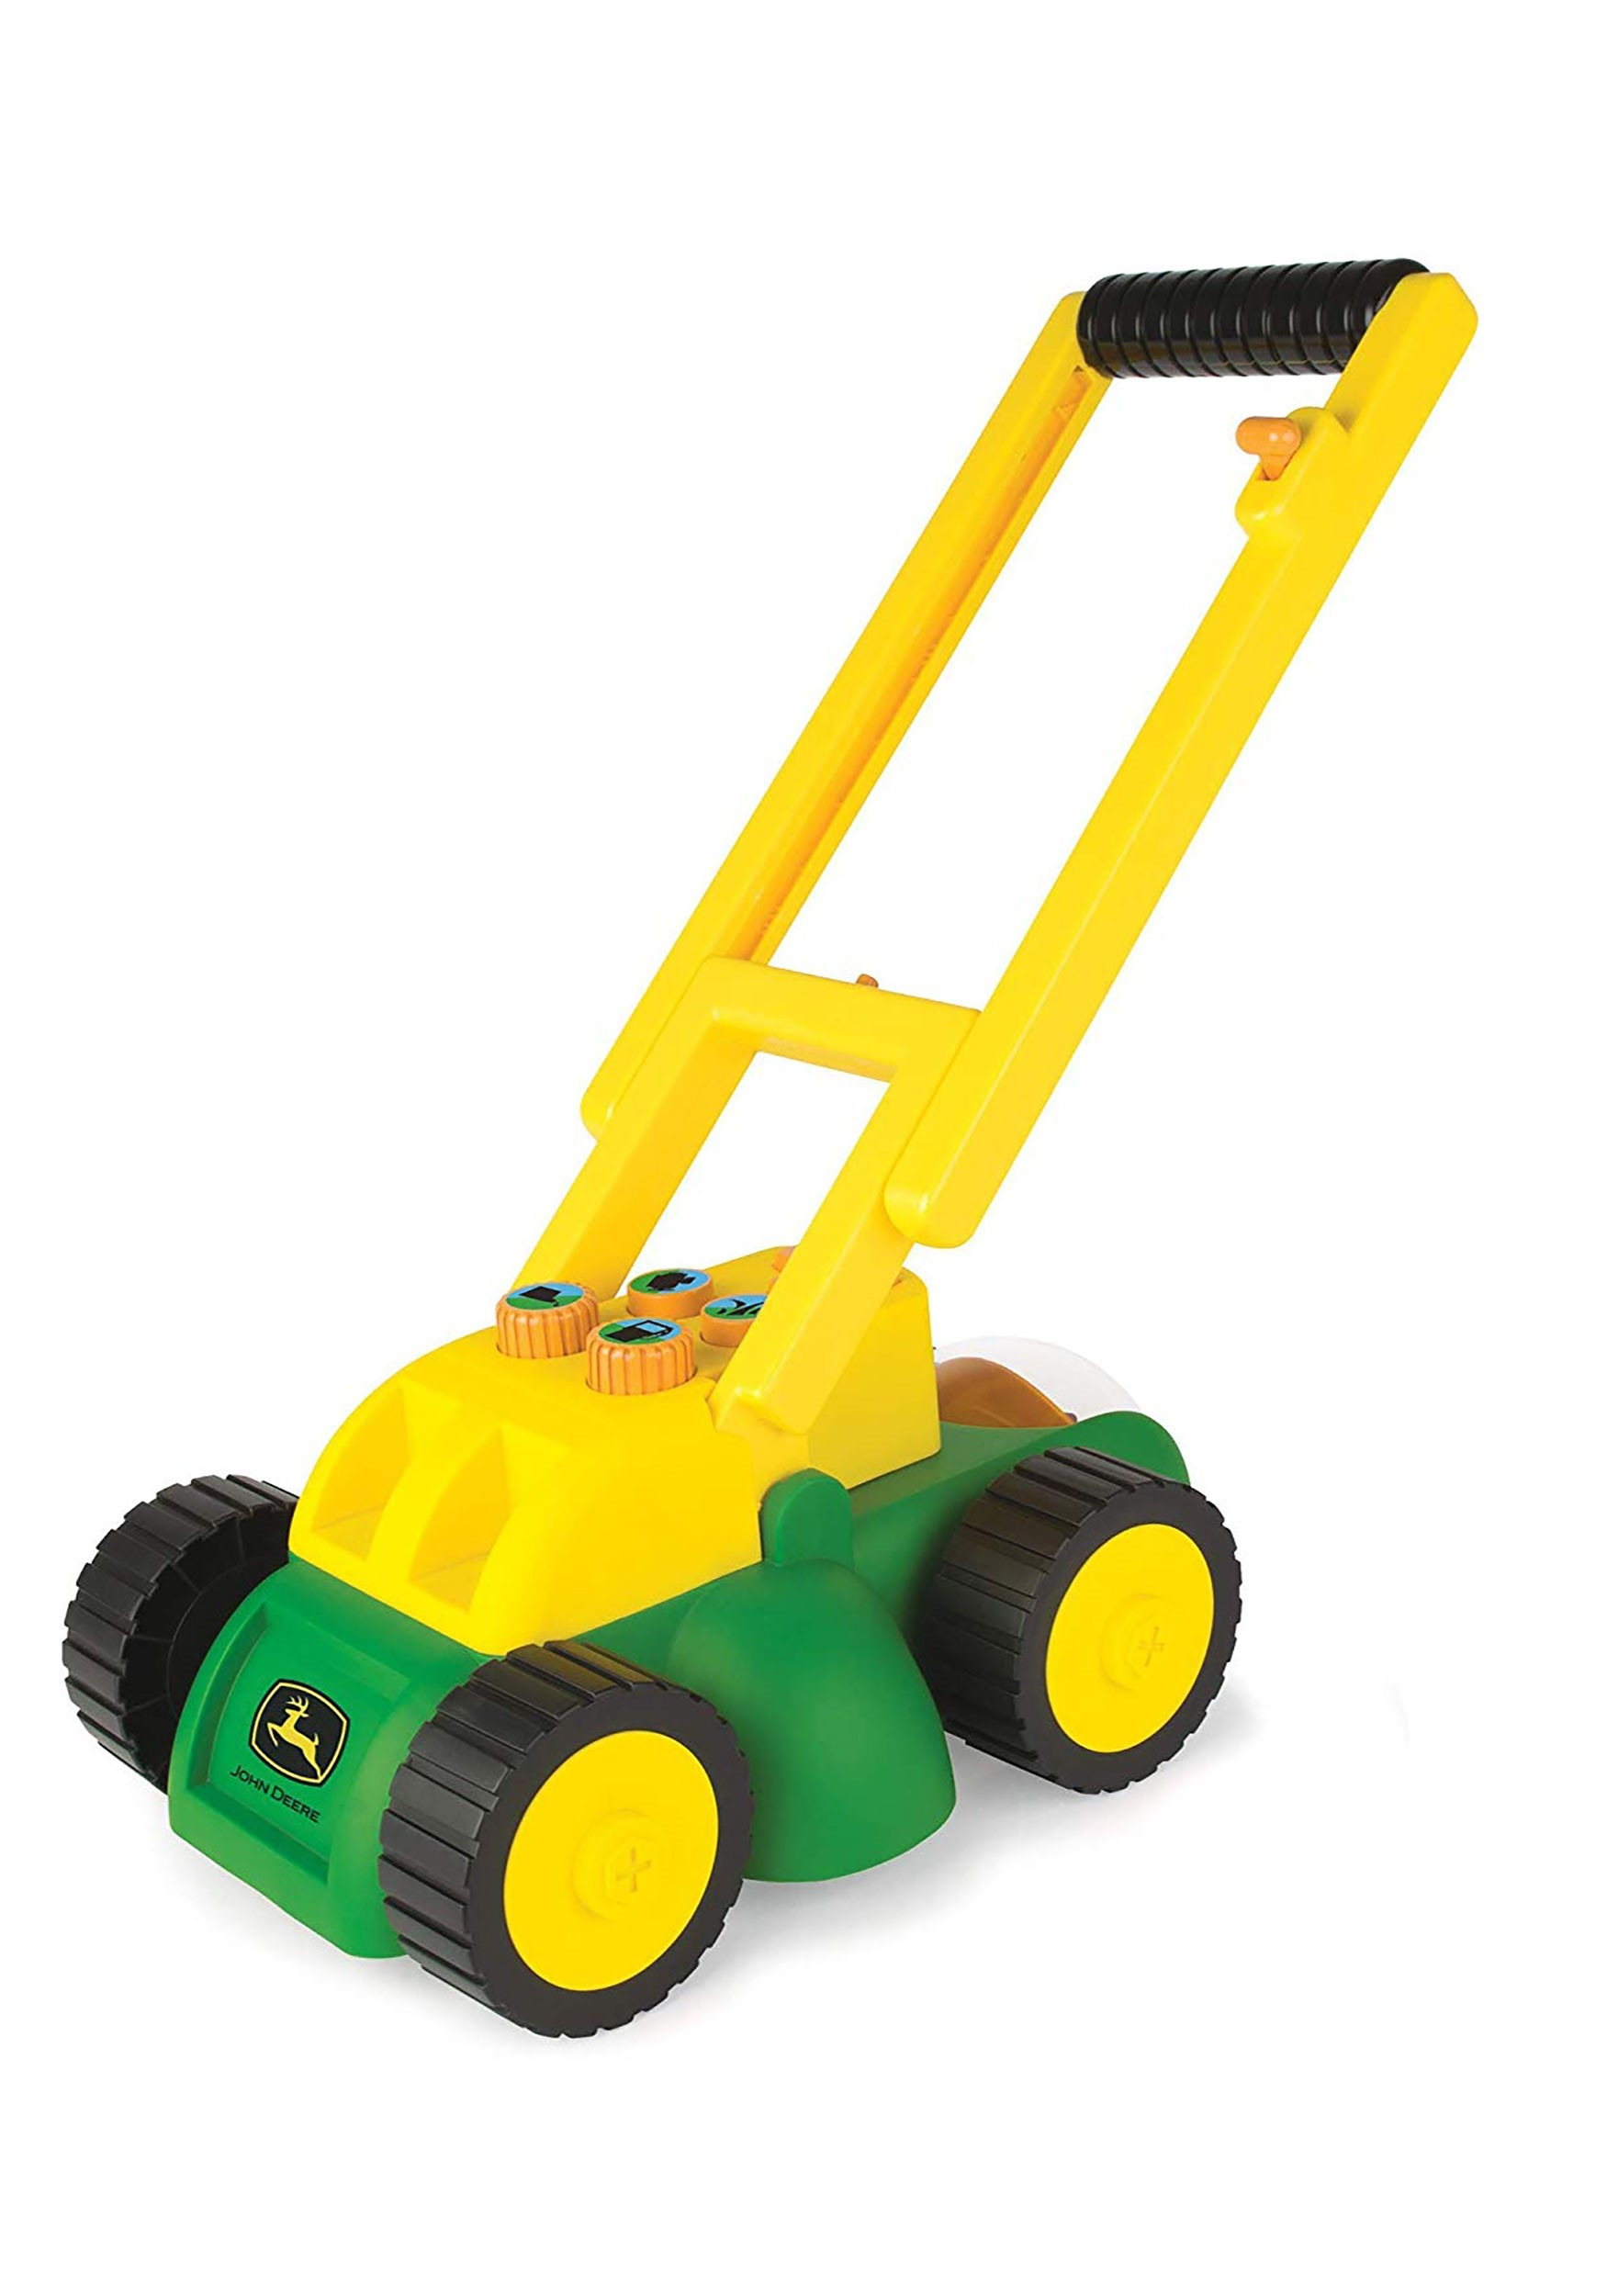 hight resolution of john deere real sounds lawnmower toy